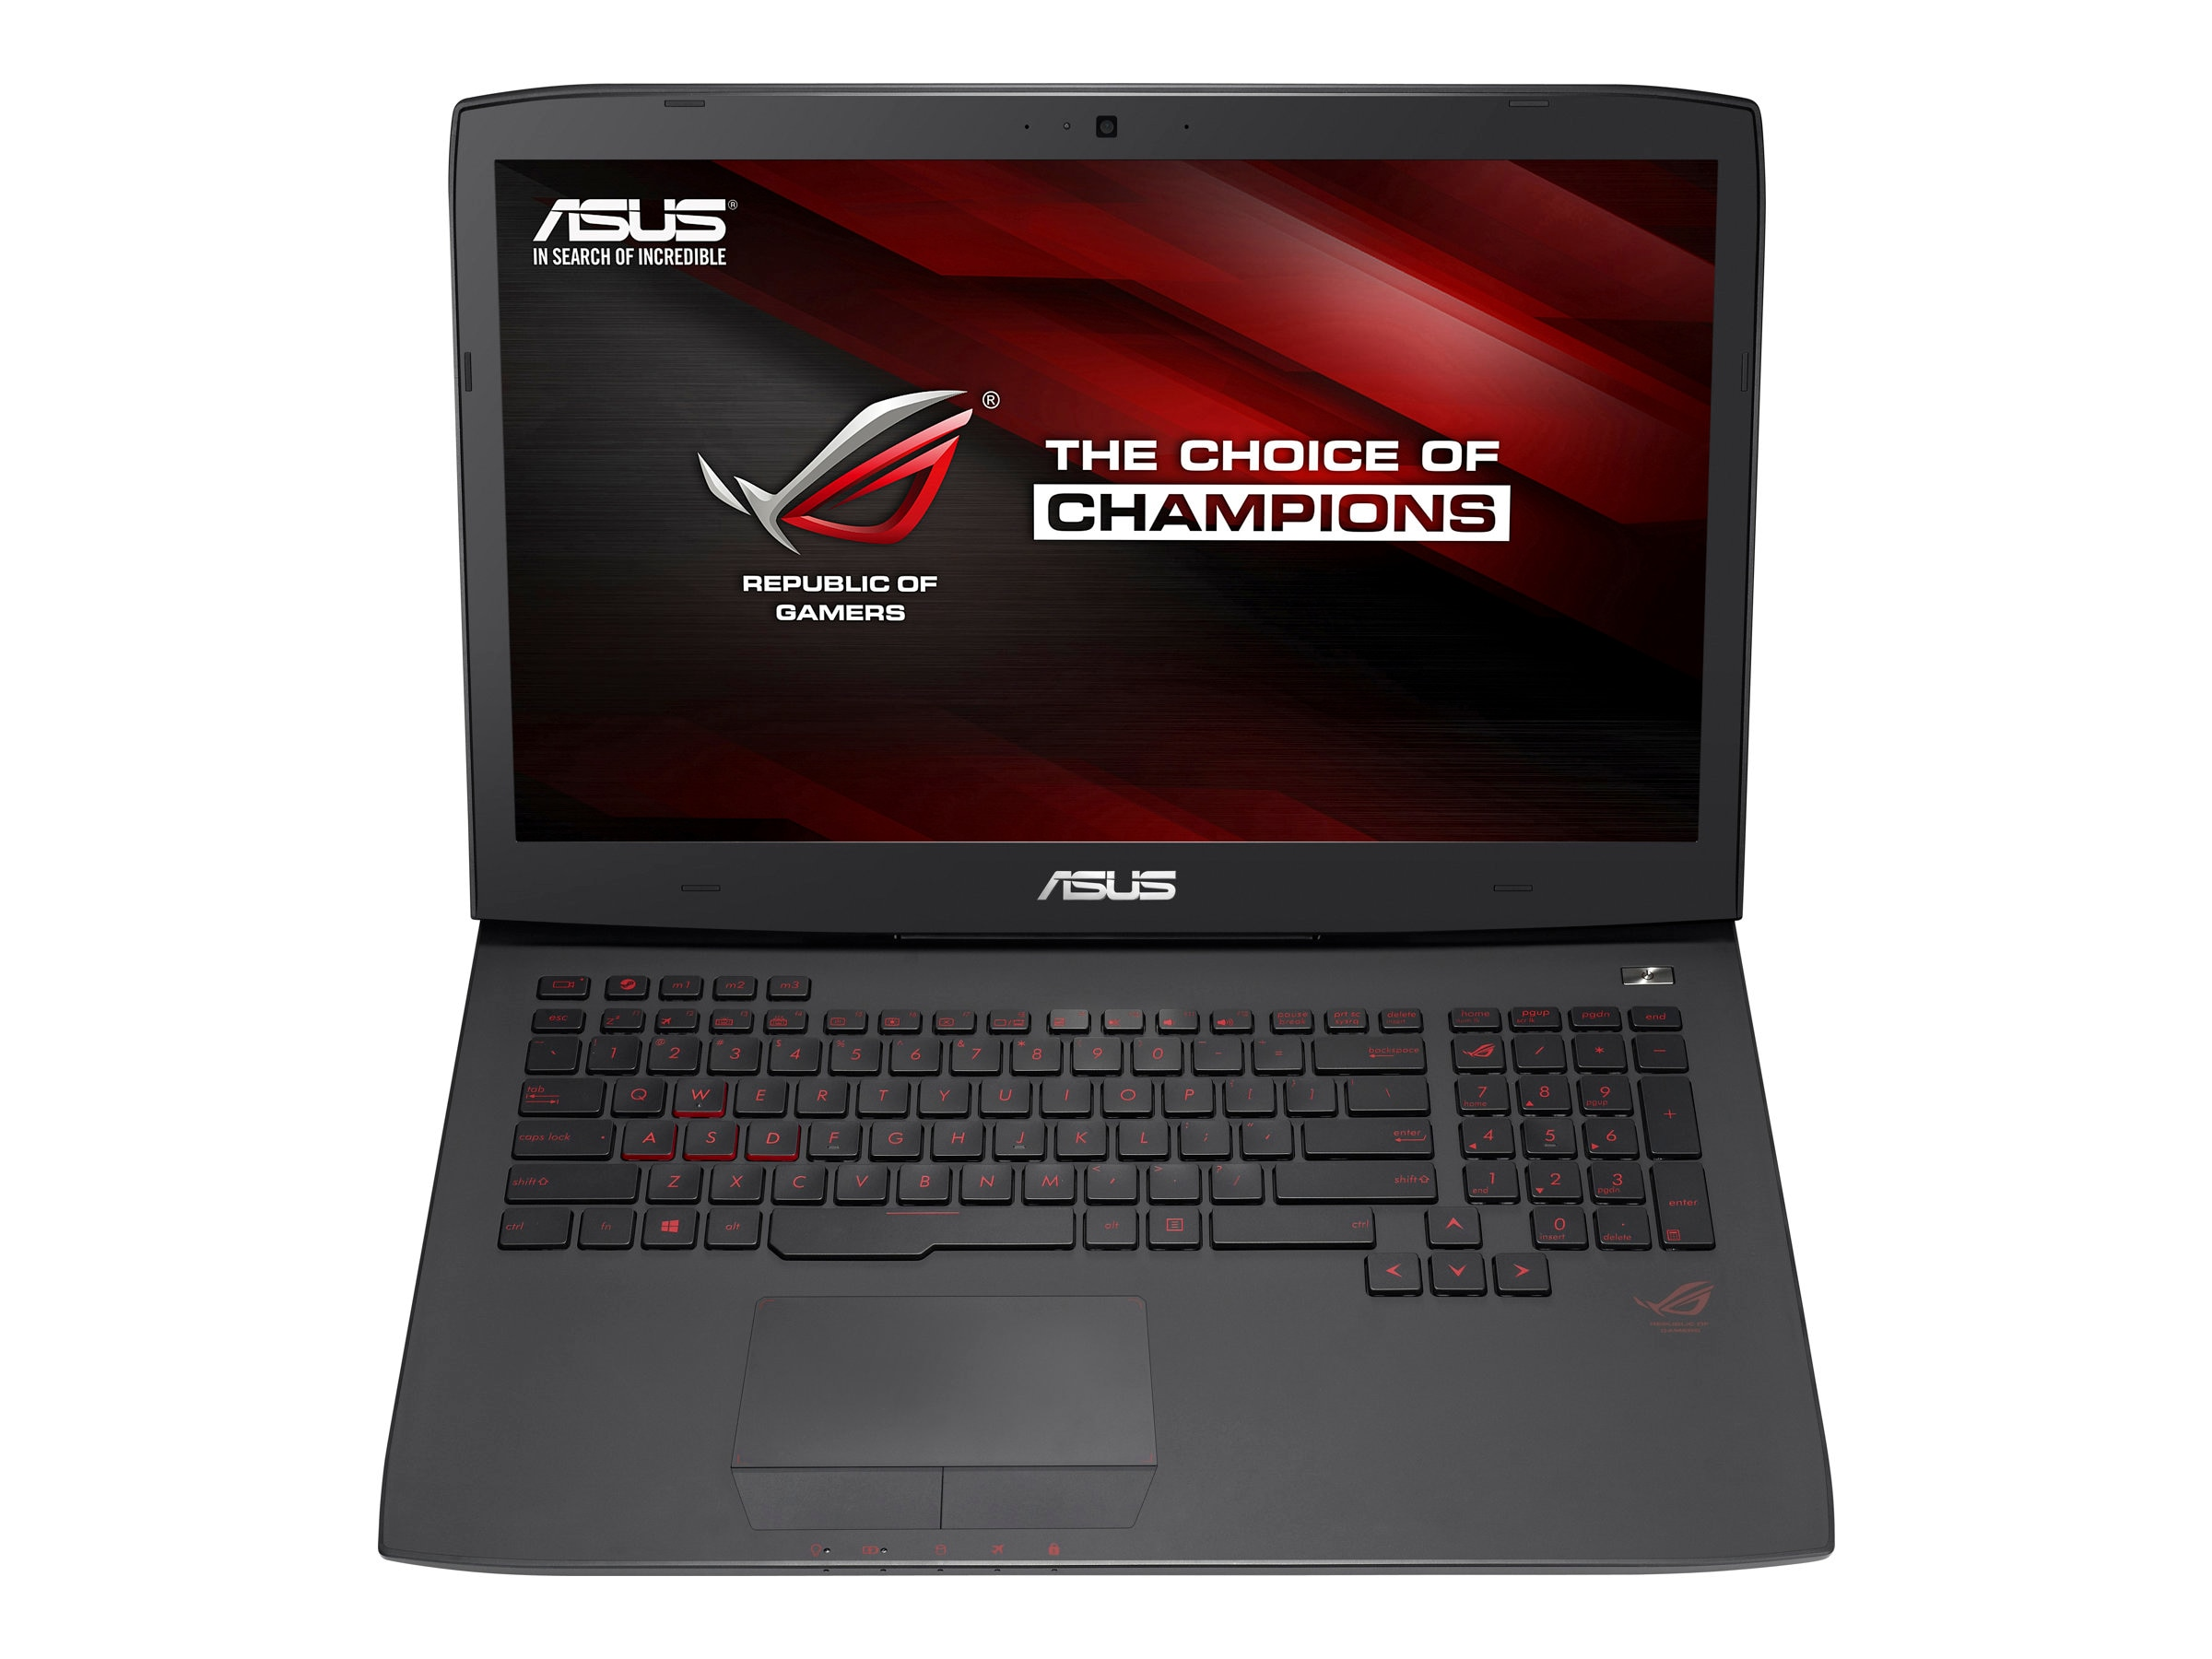 Asus G751JY-DH71 Notebook PC Core i7-4710HQ 24GB 1TB 17.3, G751JY-DH71, 17882724, Notebooks